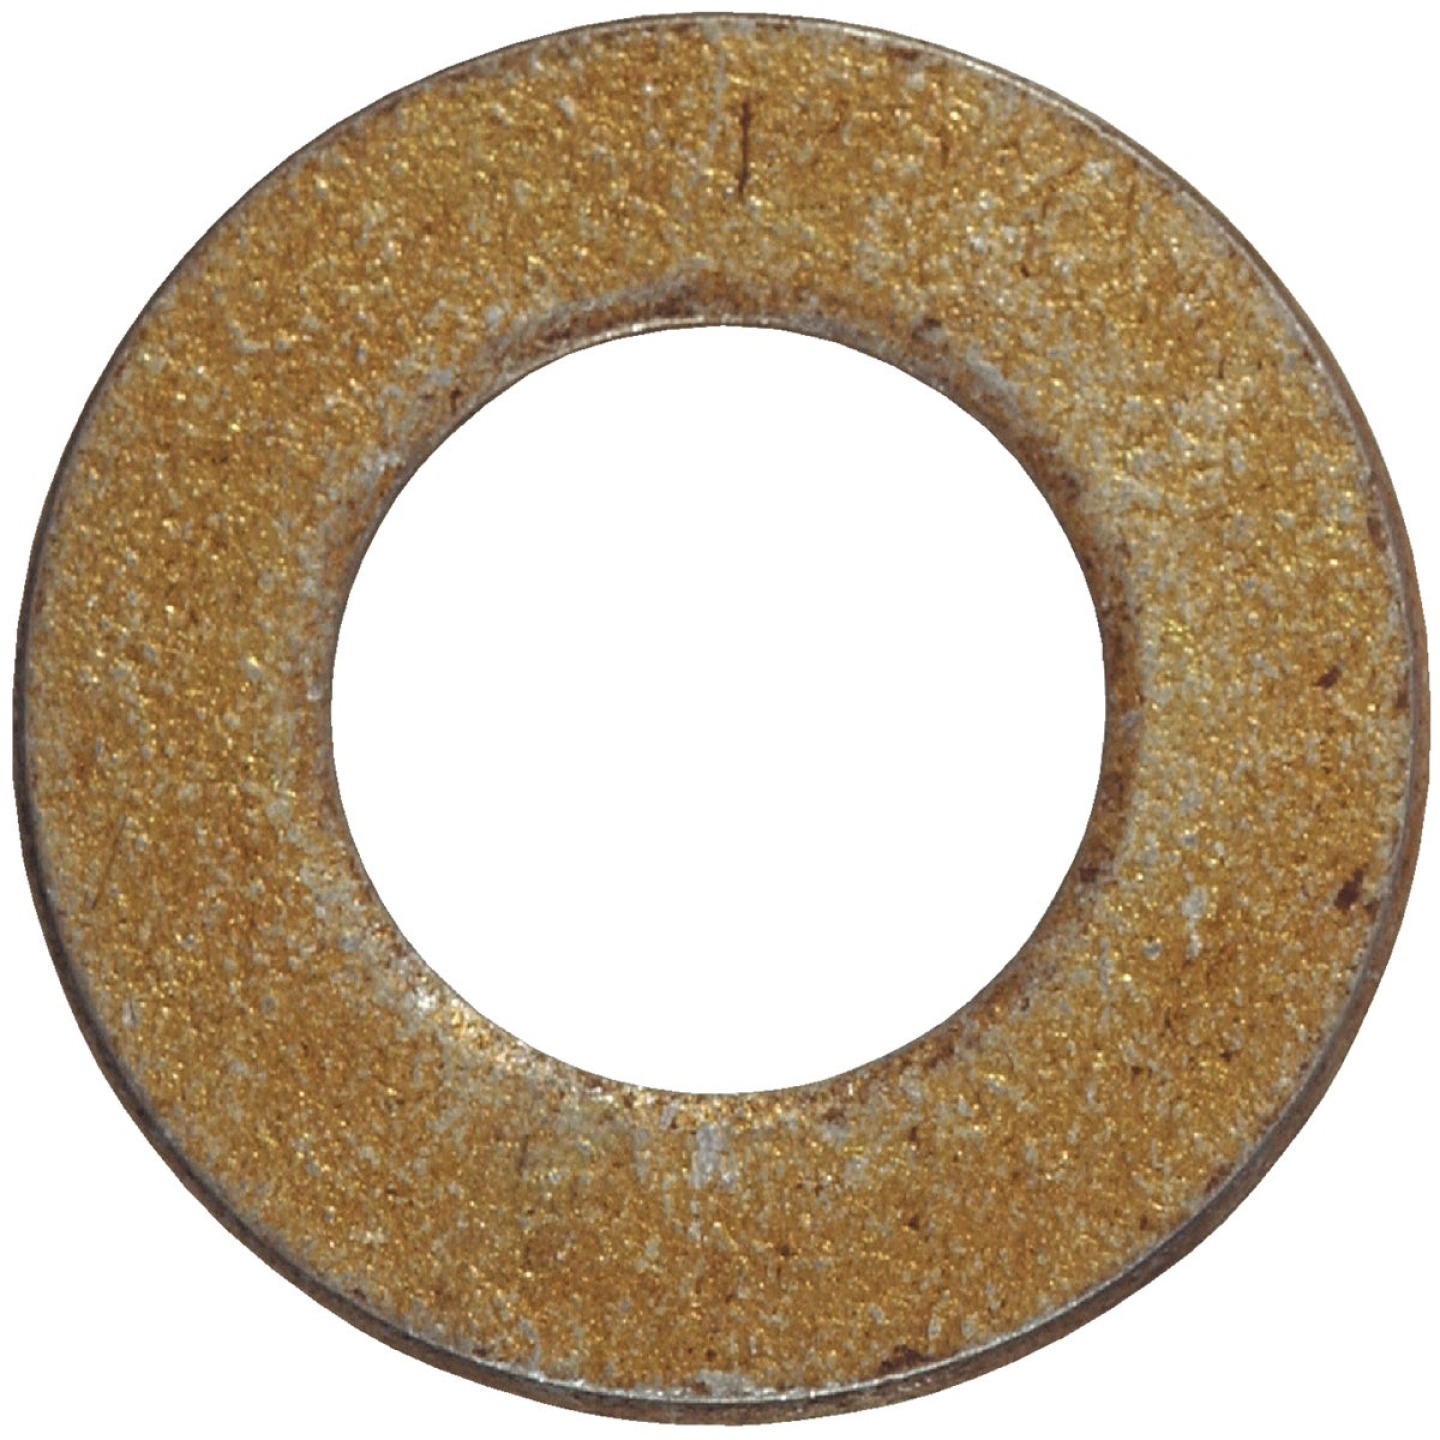 Hillman 5/8 In. SAE Hardened Steel Yellow Dichromate Flat Washer (25 Ct.) Image 1